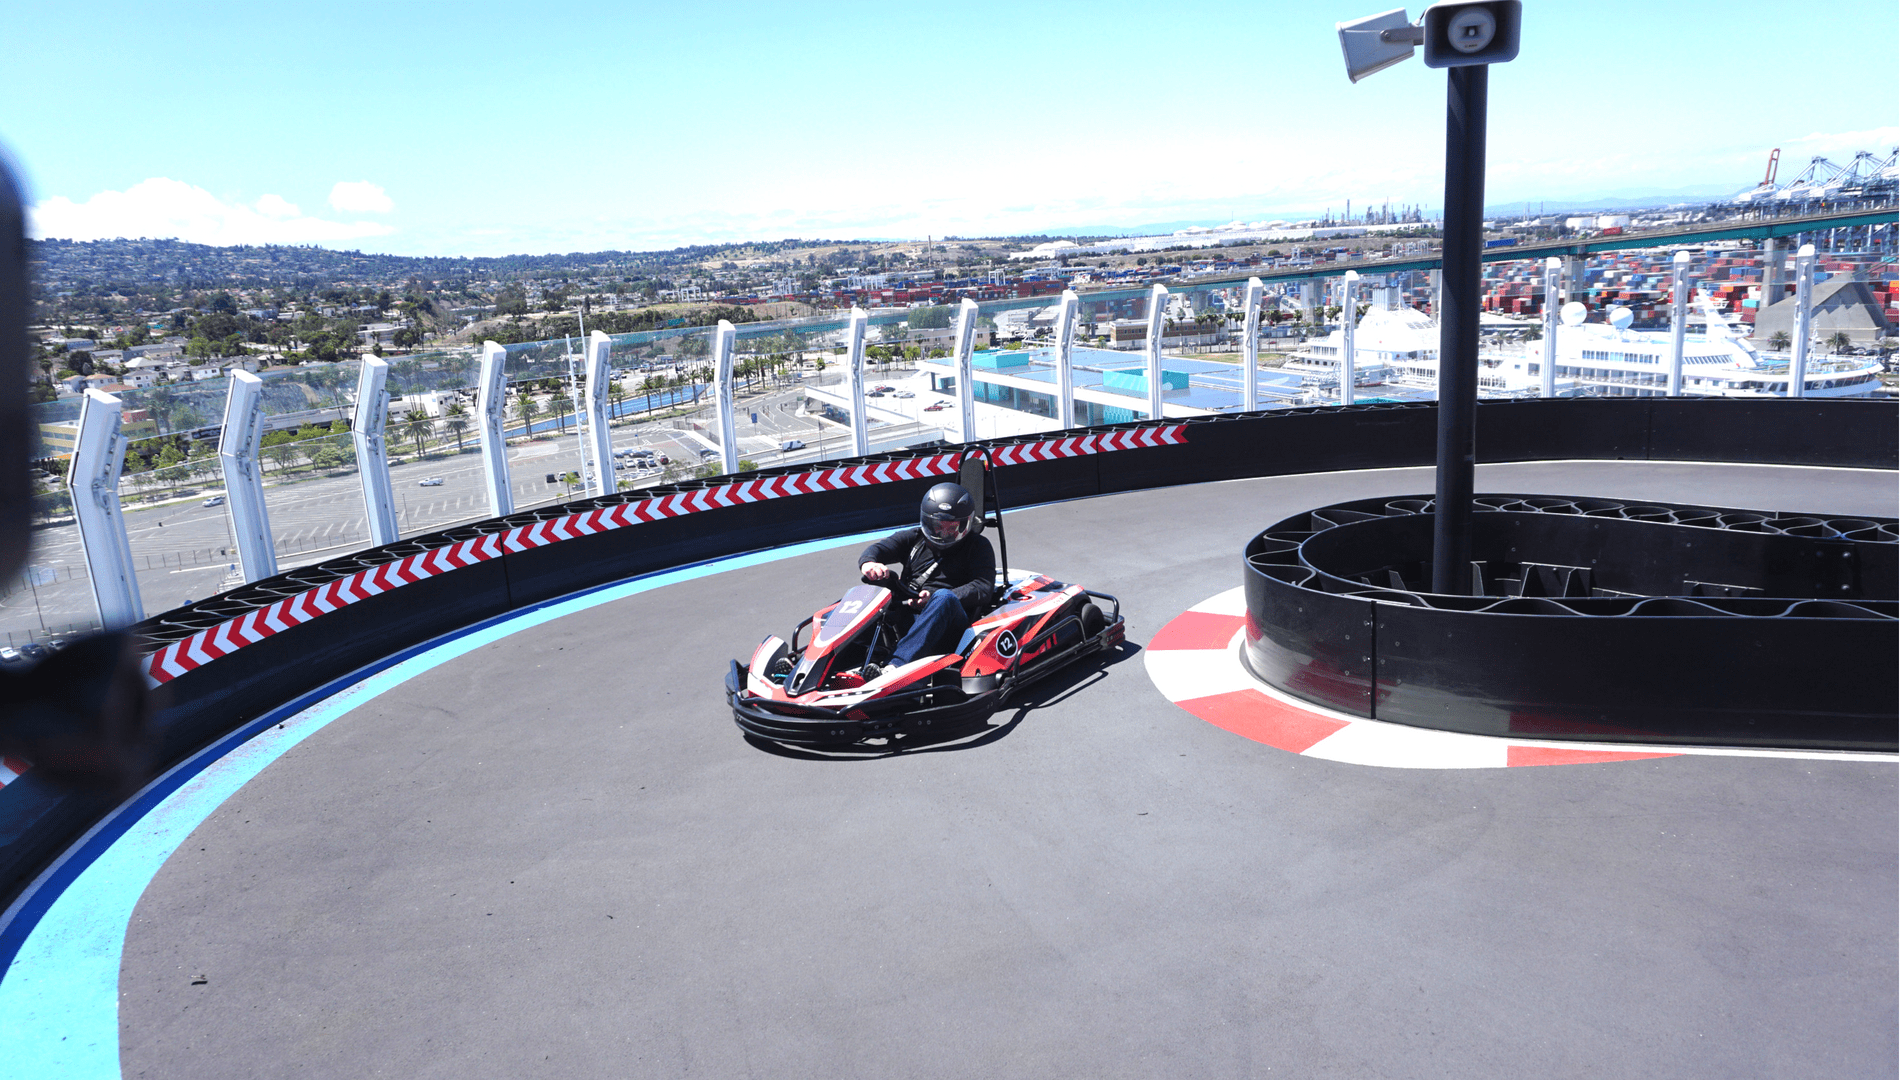 Go Karts Colorado Springs >> 12 Incredible Things You Did NOT KNOW About the Norwegian Bliss + Photo Tour